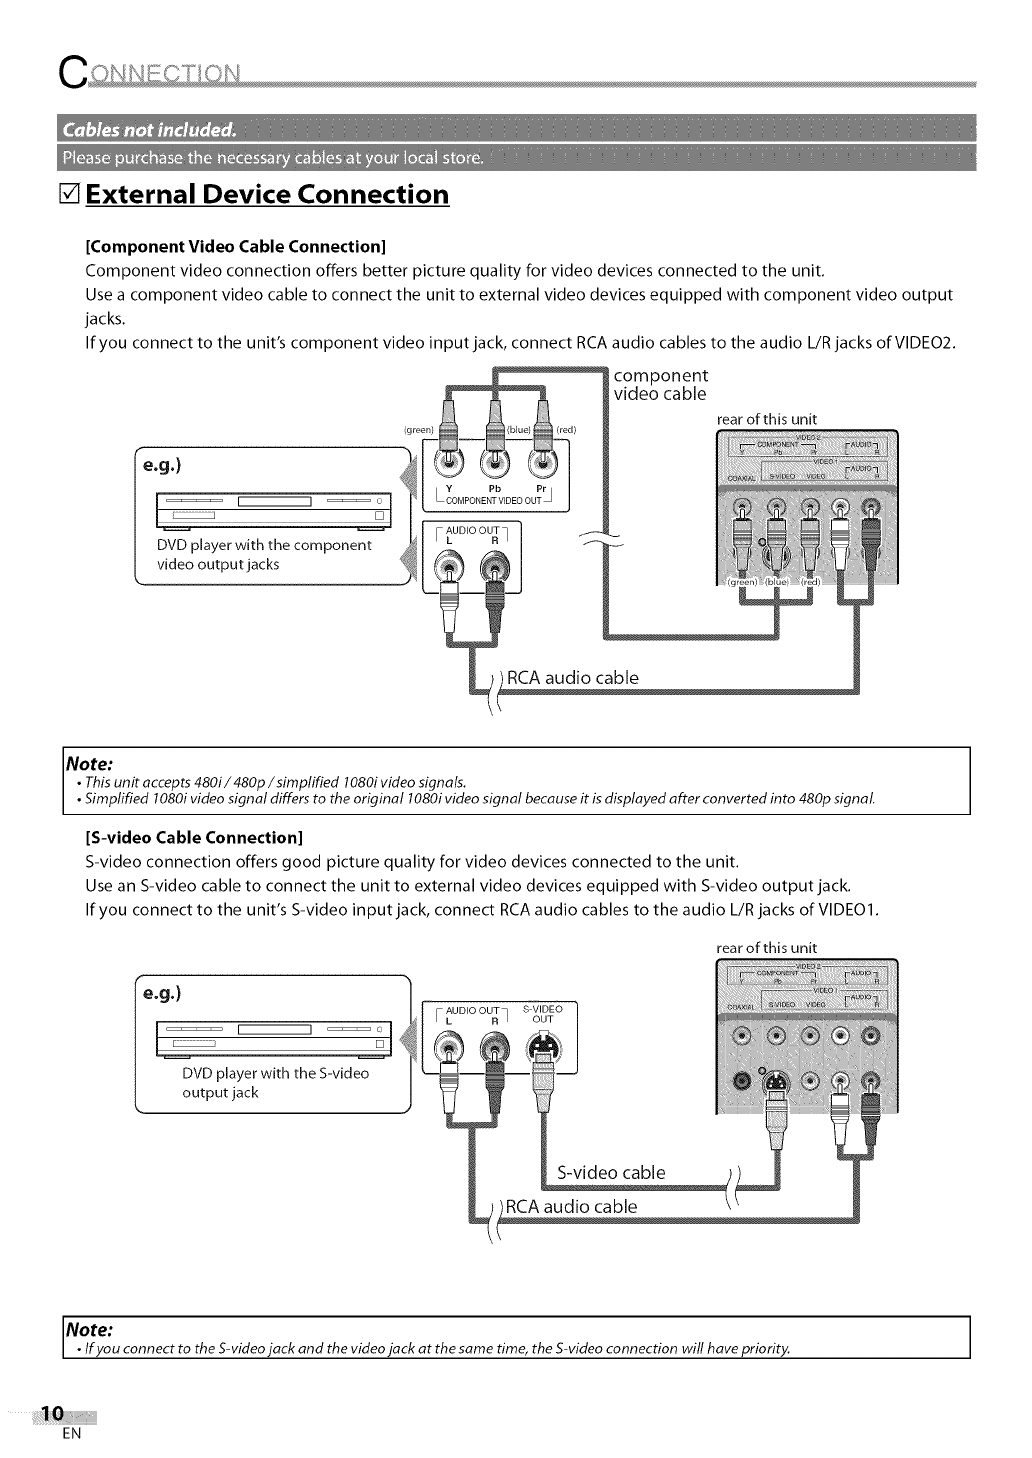 Sylvania Lc155sc8 User Manual Lcd Television Manuals And Guides L0810487 External Schematic This Is The Of Connections Device Connection